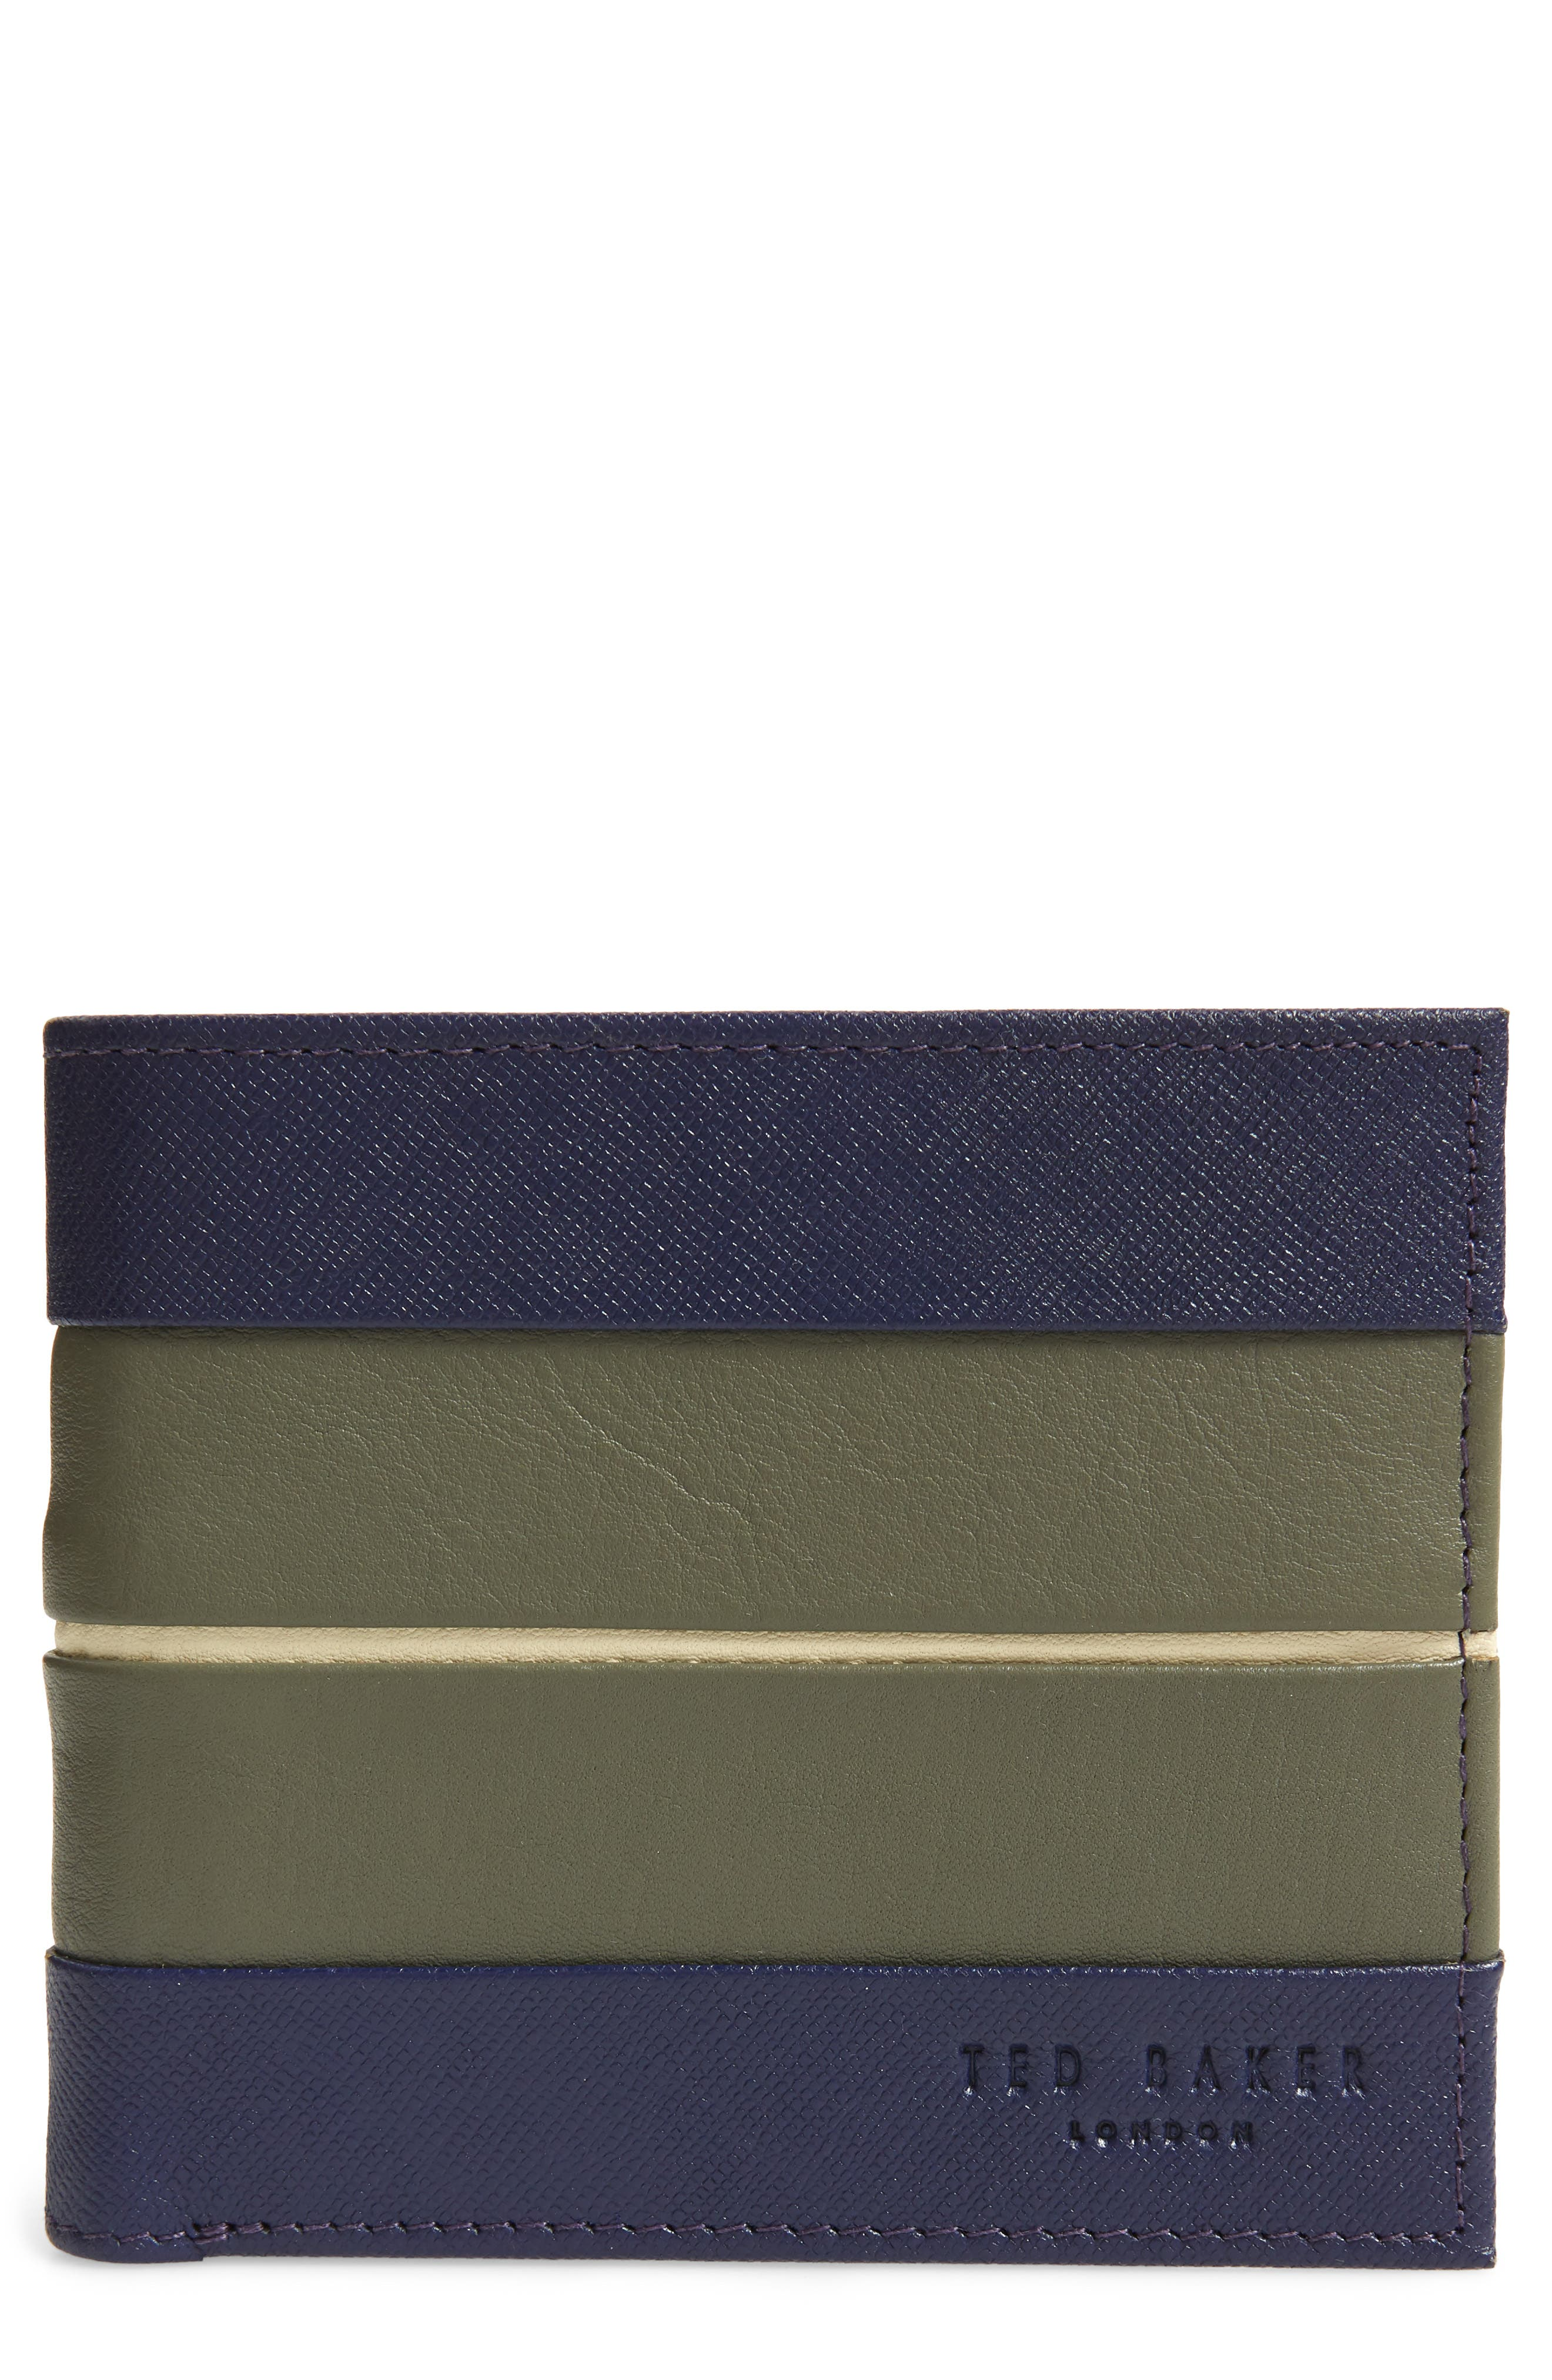 Striped Leather Bifold Wallet,                         Main,                         color, 410